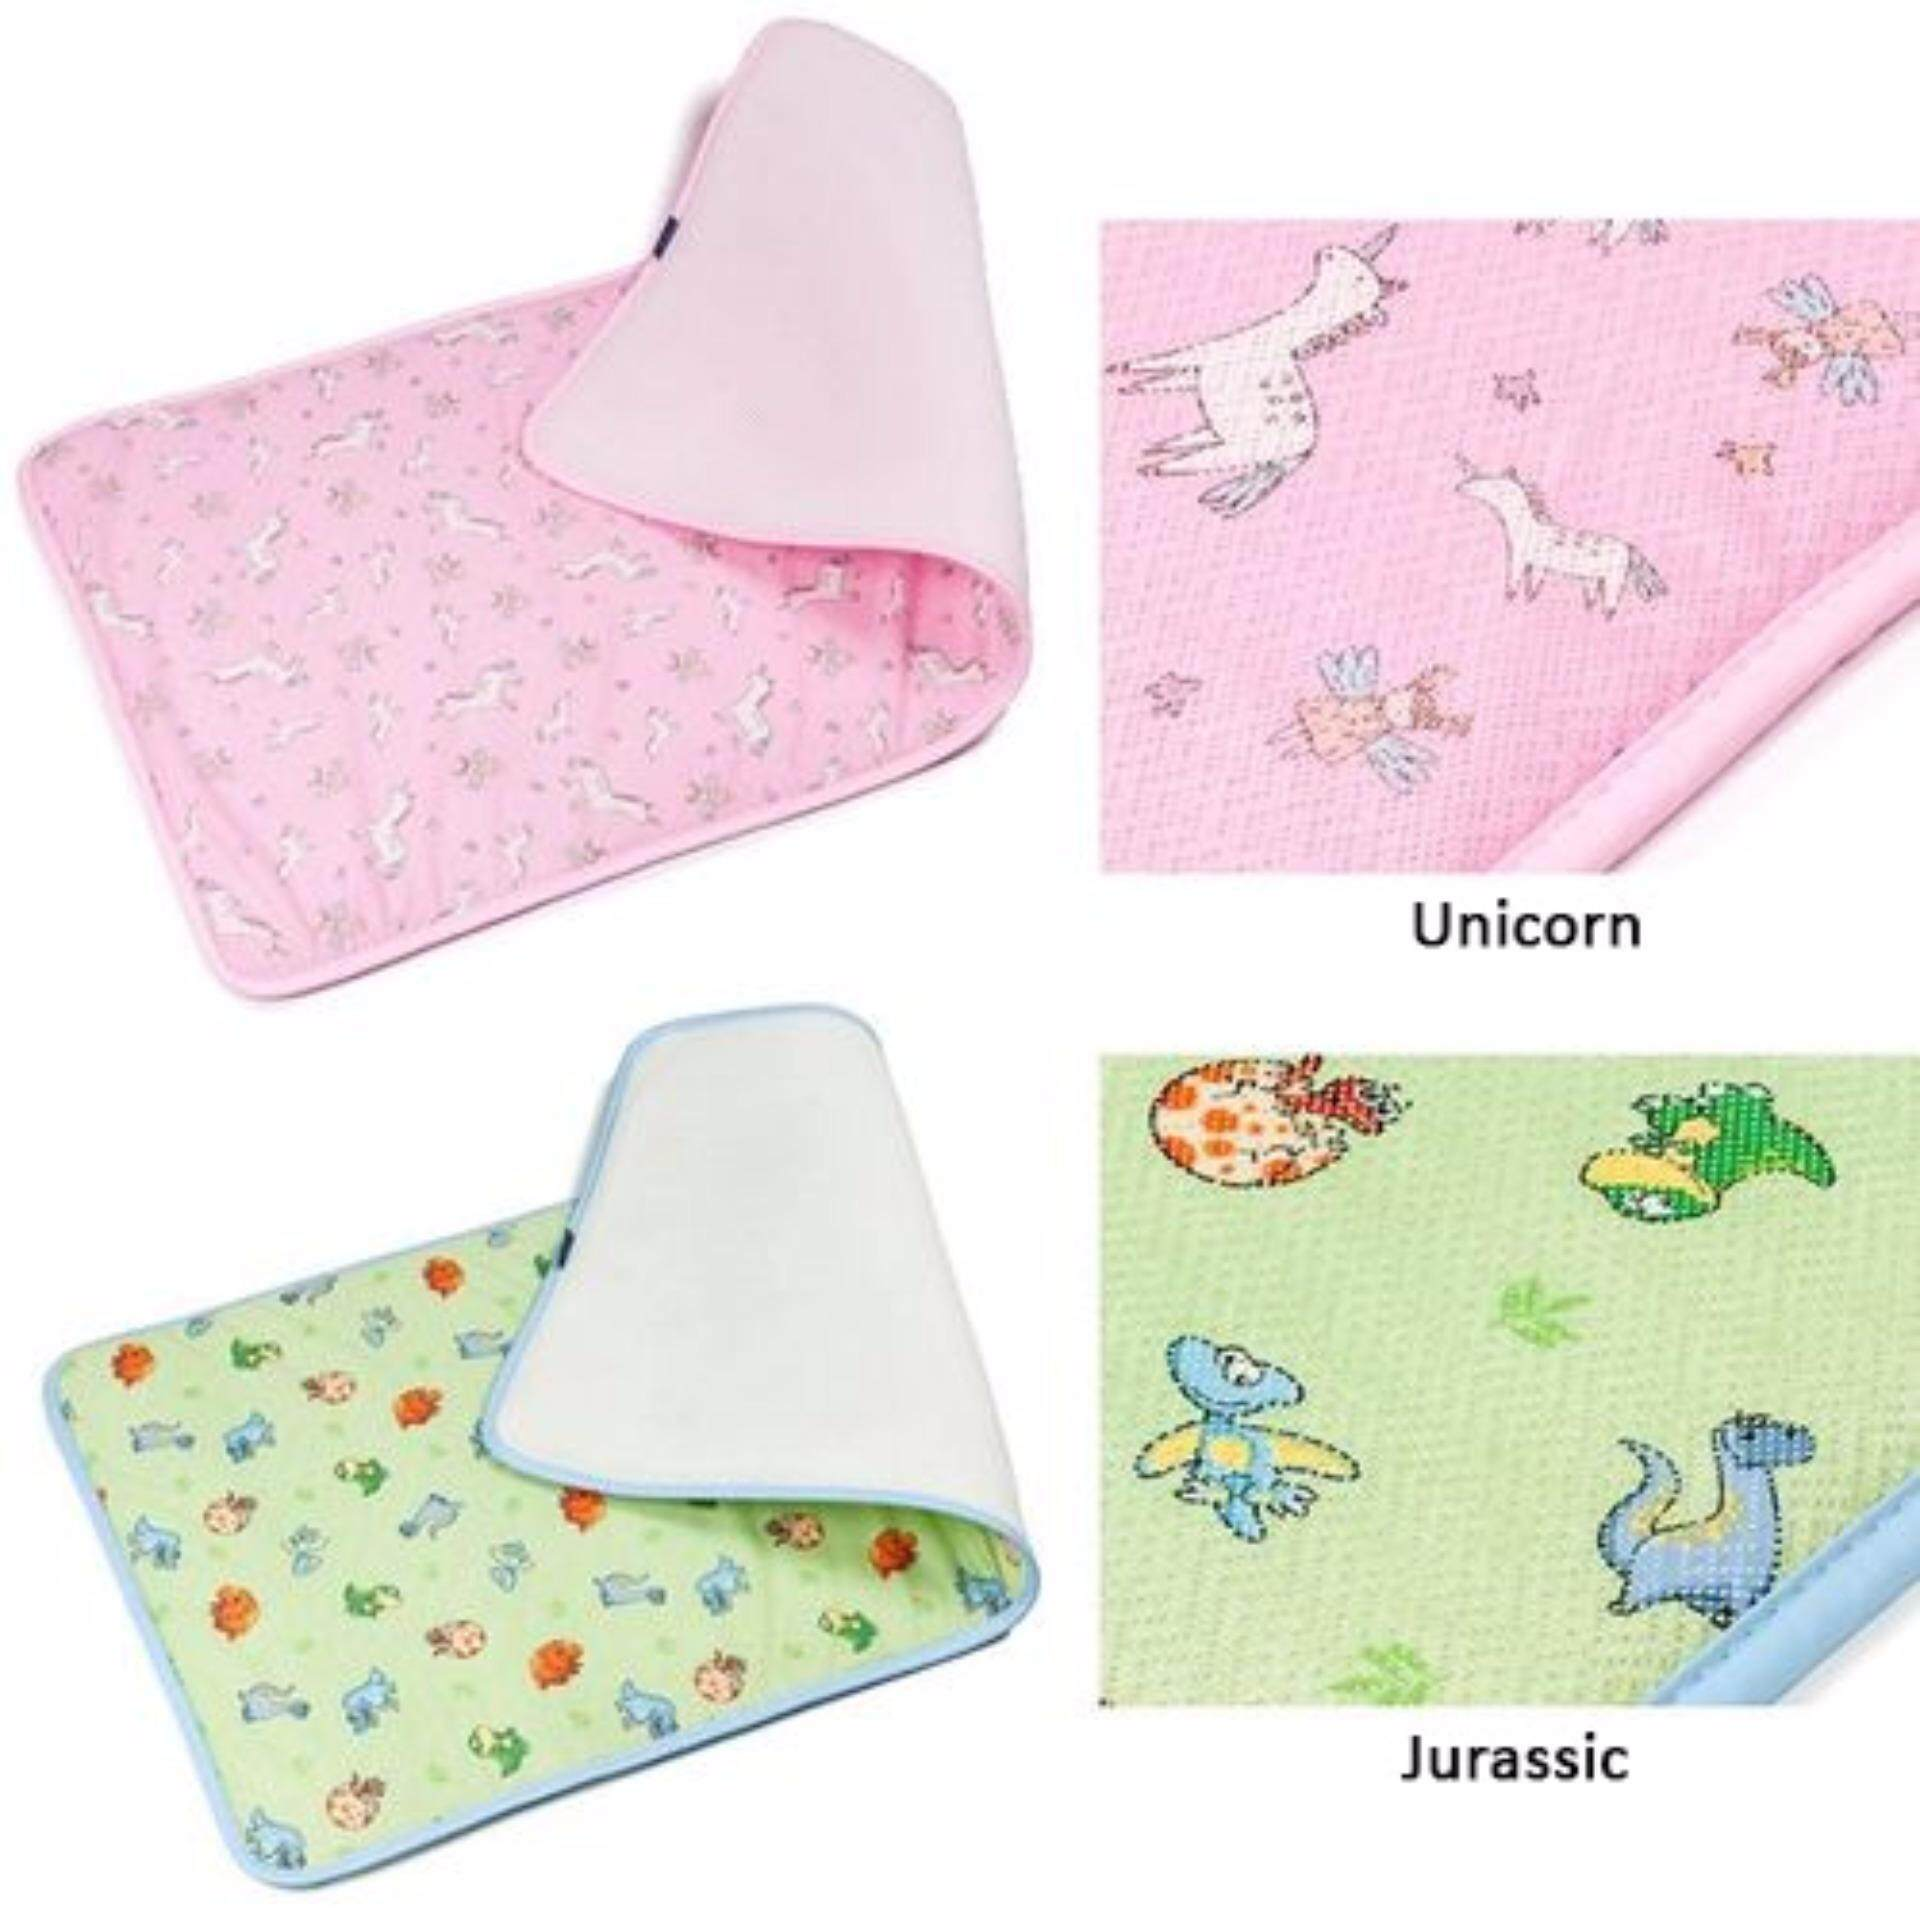 GIO KIDS MAT Single Side Unicorn L Size with Carrier Bag